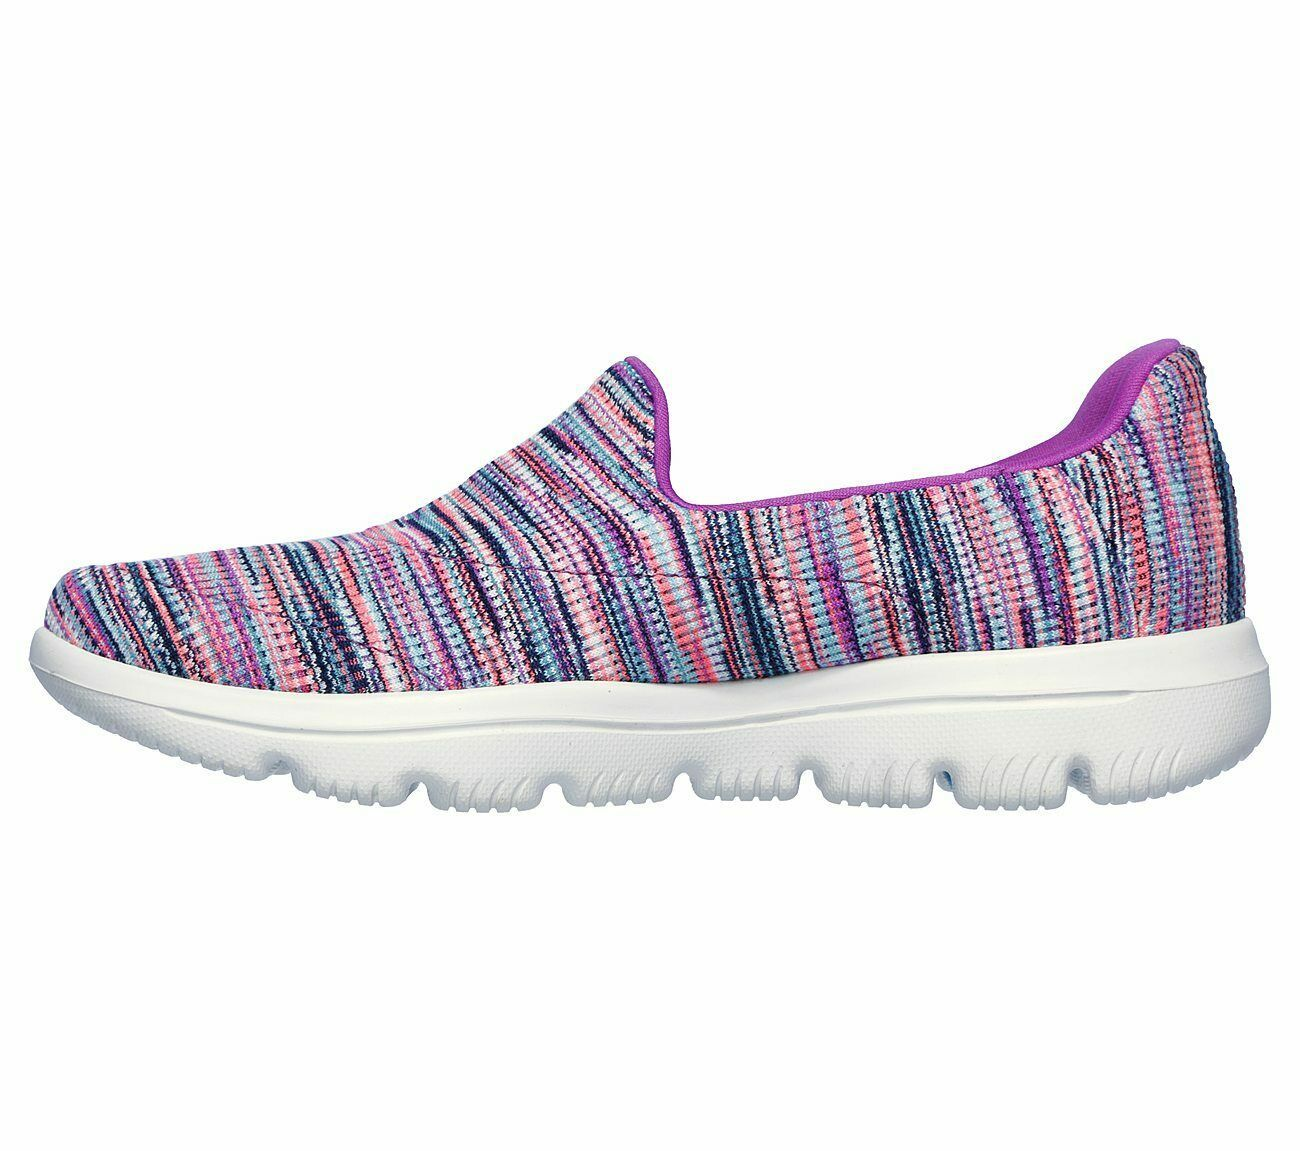 Skechers Shoes Purple Pink Go Walk Evolution Women's Sporty Casual Slip On 15759 image 3